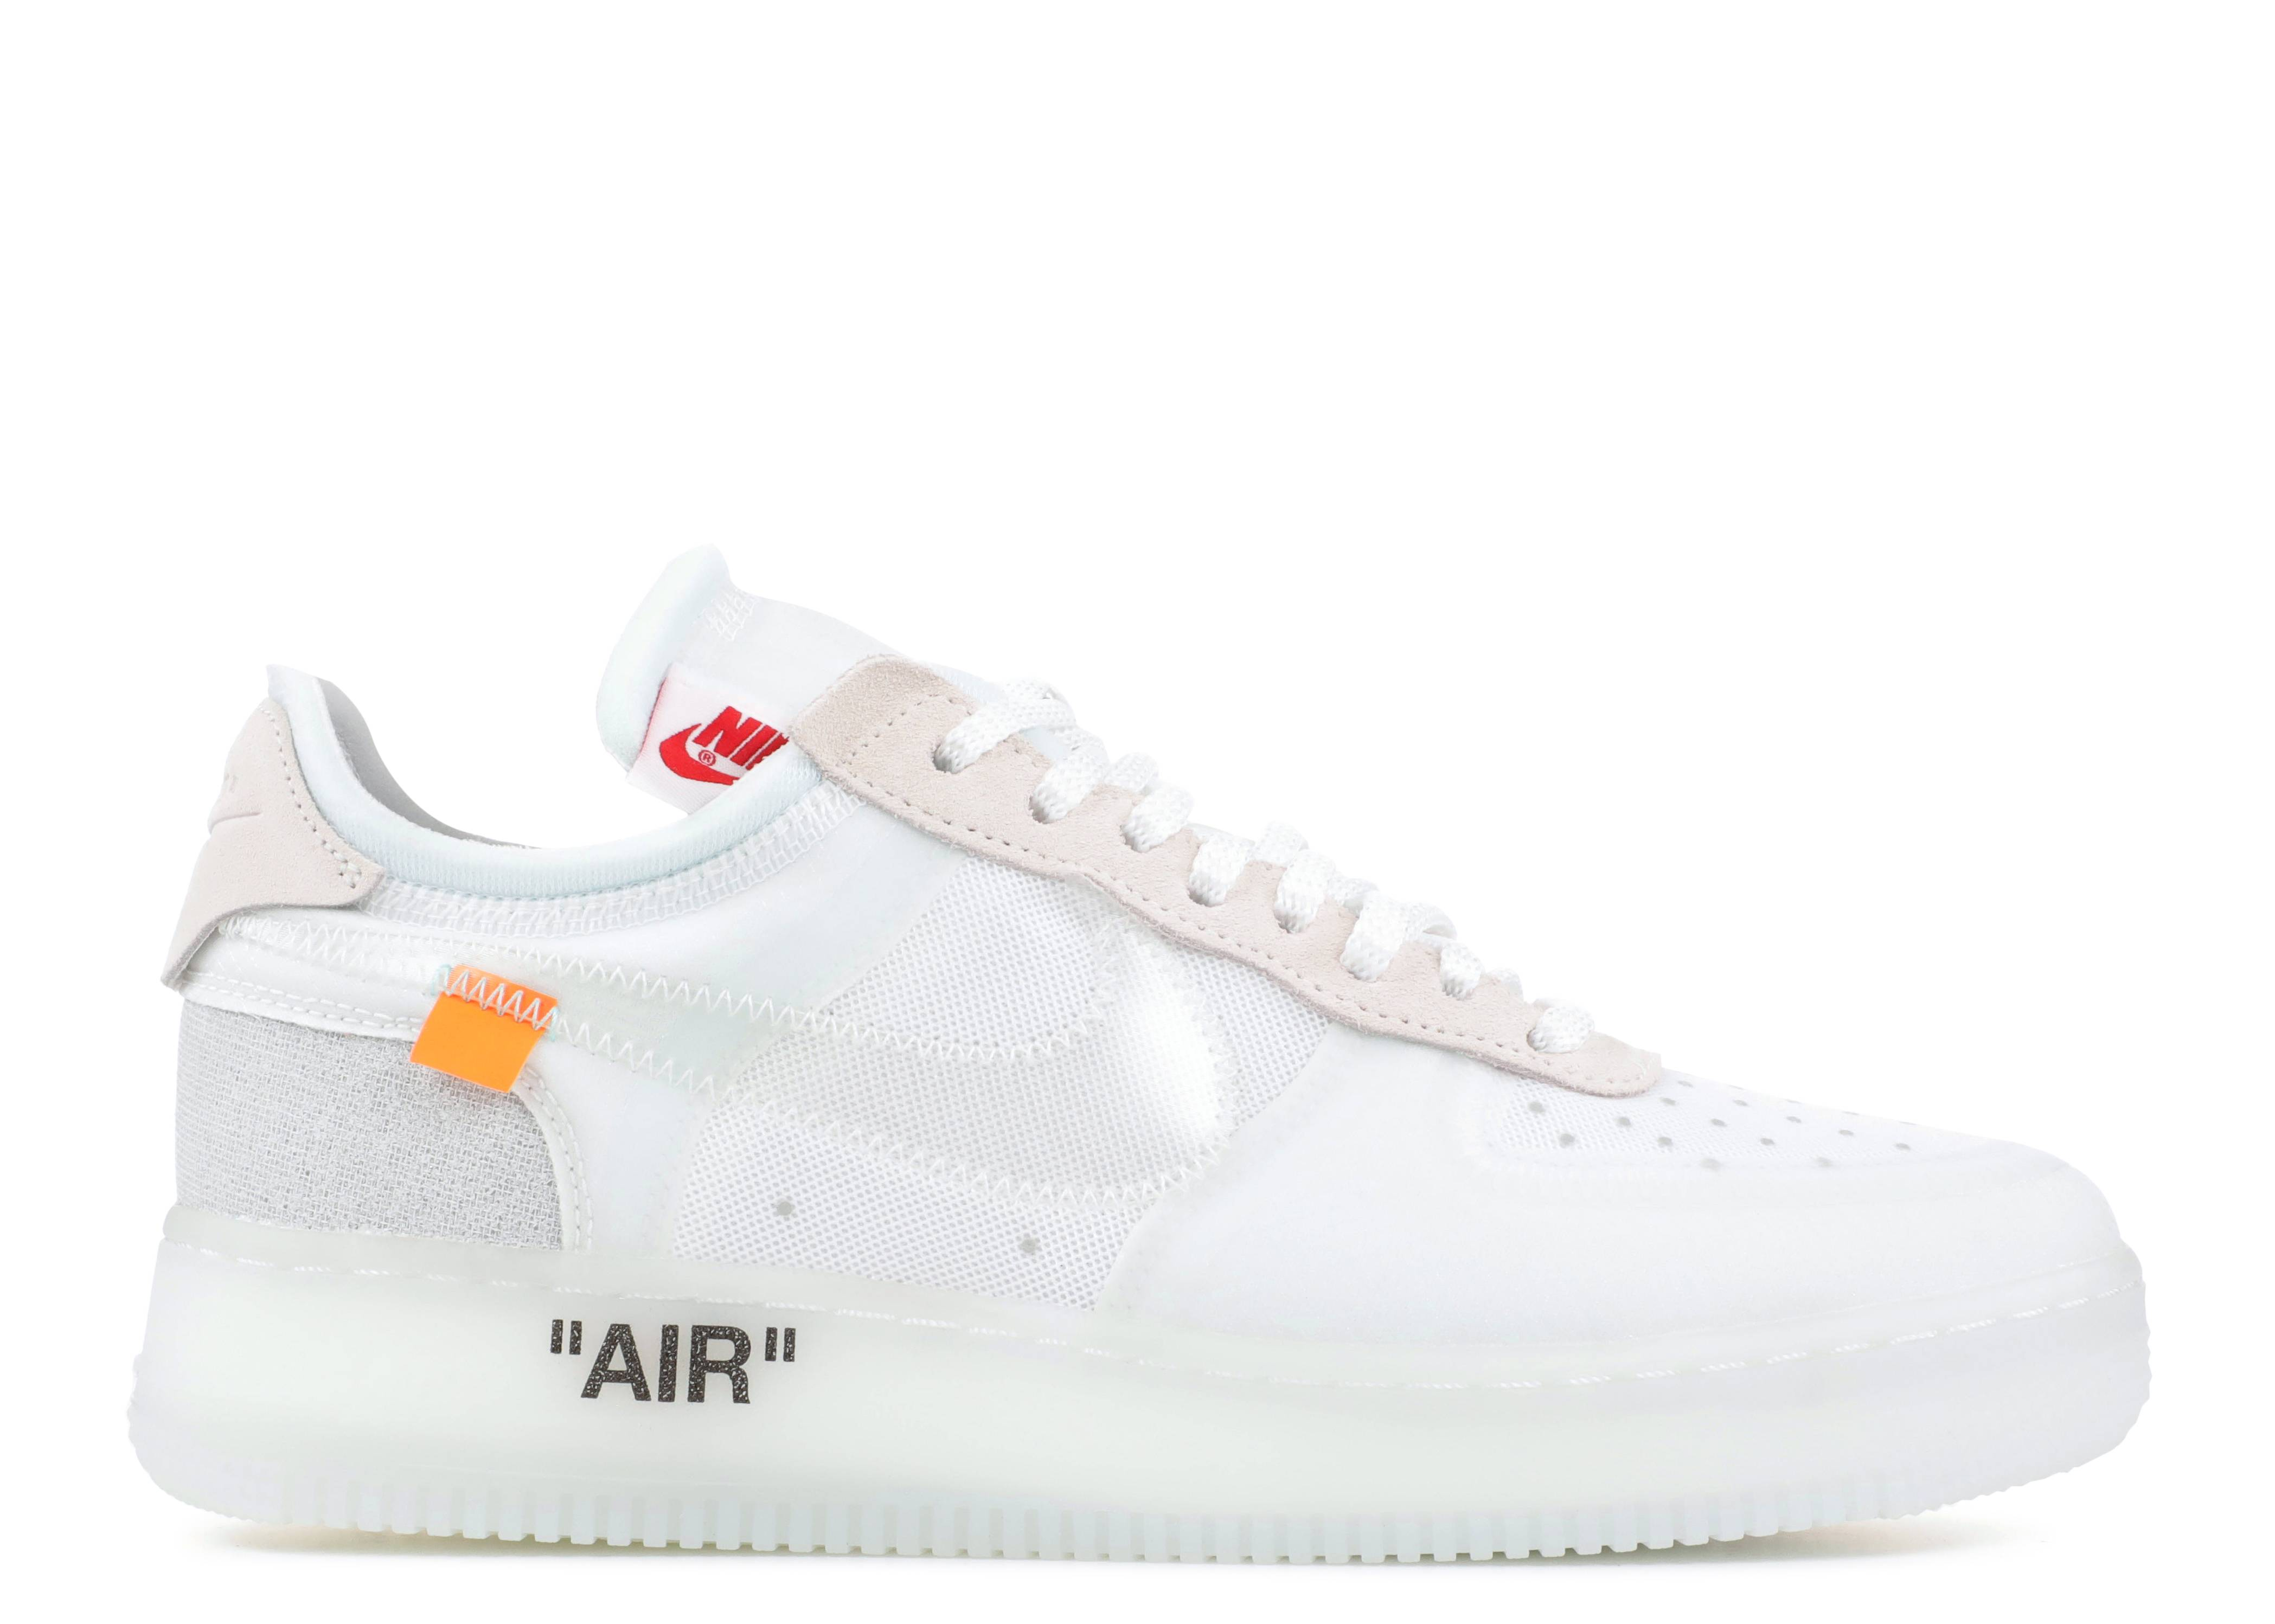 Off White x Nike Air Force 1 Low Retro Shoes